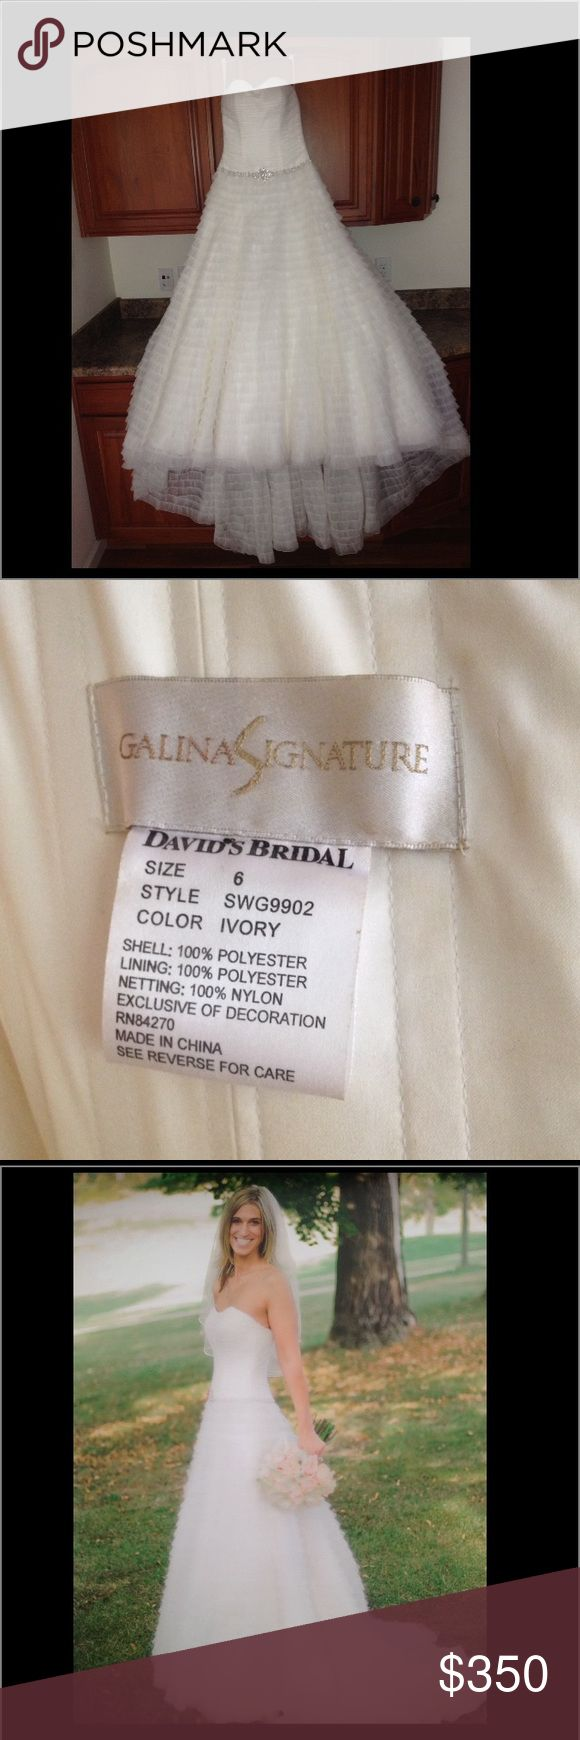 Wedding Dress! Make me an offer! Willing to trade. Galina Signature Wedding Dress by David's Bridal. Worn ONCE. Clean, no tears, rips, or stains. Matching Veil and Dress Bag is included. Color is Ivory. I will ship this Dress to you. Make me an offer. David's Bridal Dresses Wedding